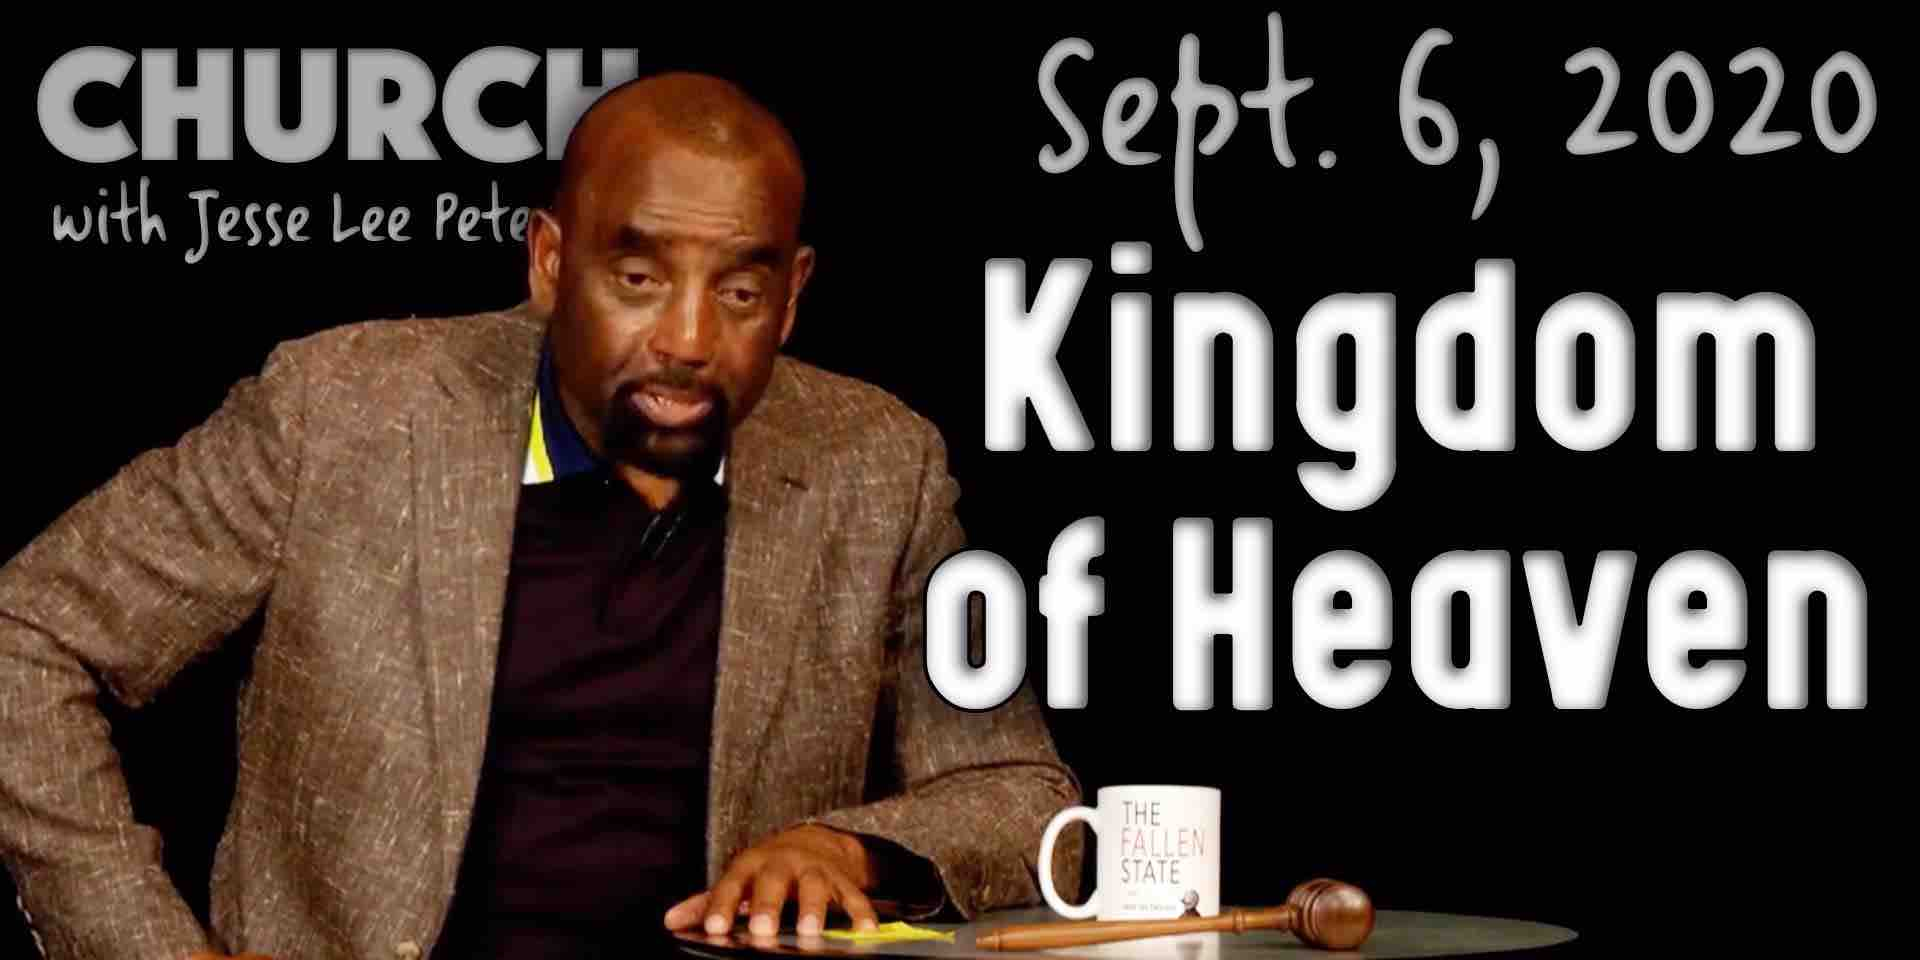 Church Sept. 6, 2020: Kingdom of Heaven